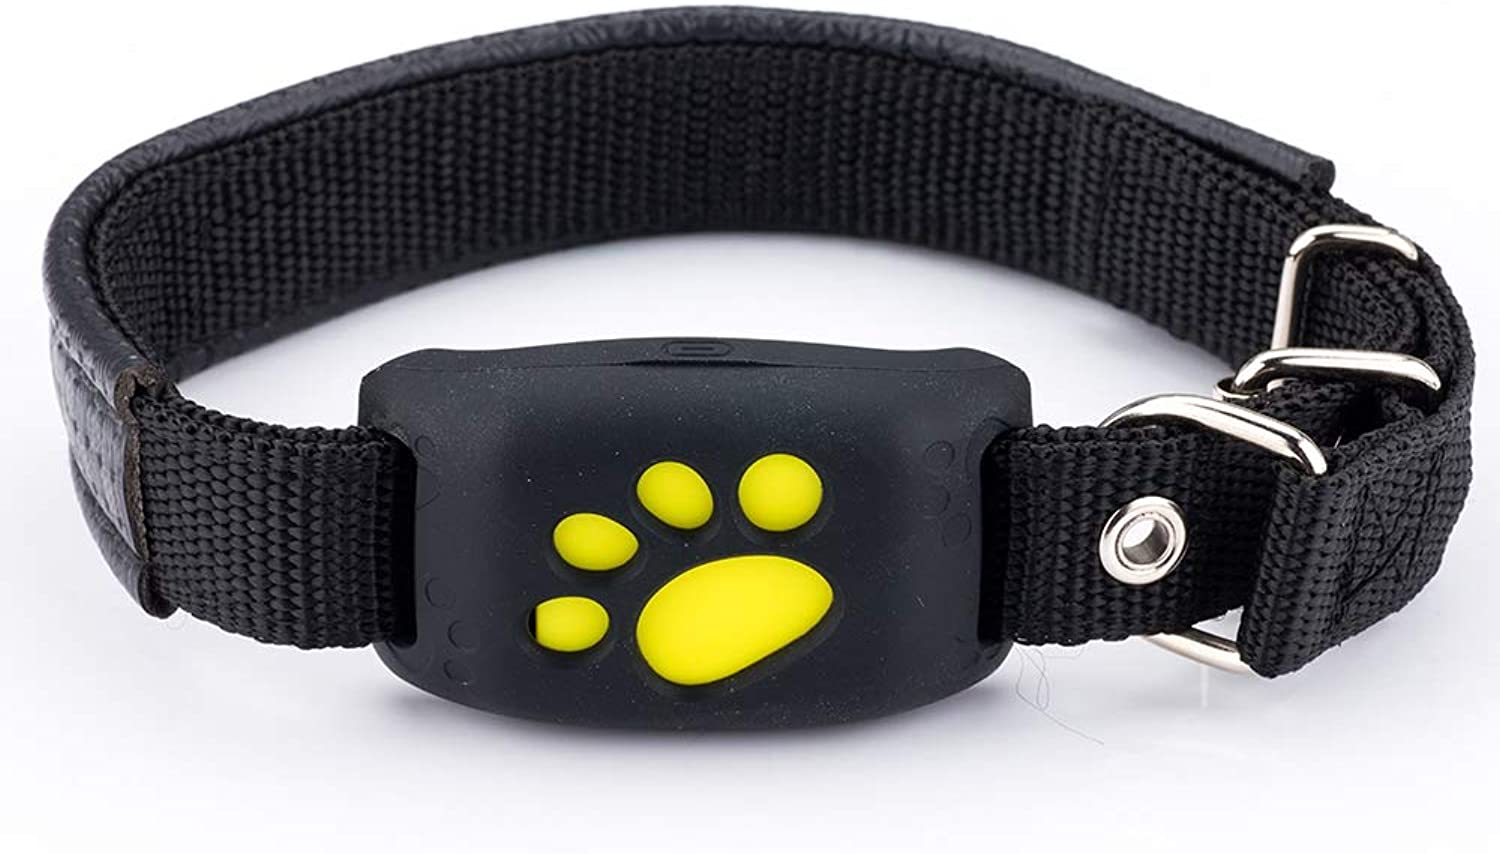 QNMM GPS Pet Tracking Device,Realtime Tracking AntiLost Pet Tracker WIFI Dog Cat Locator Pet Tracker & Activity Monitor